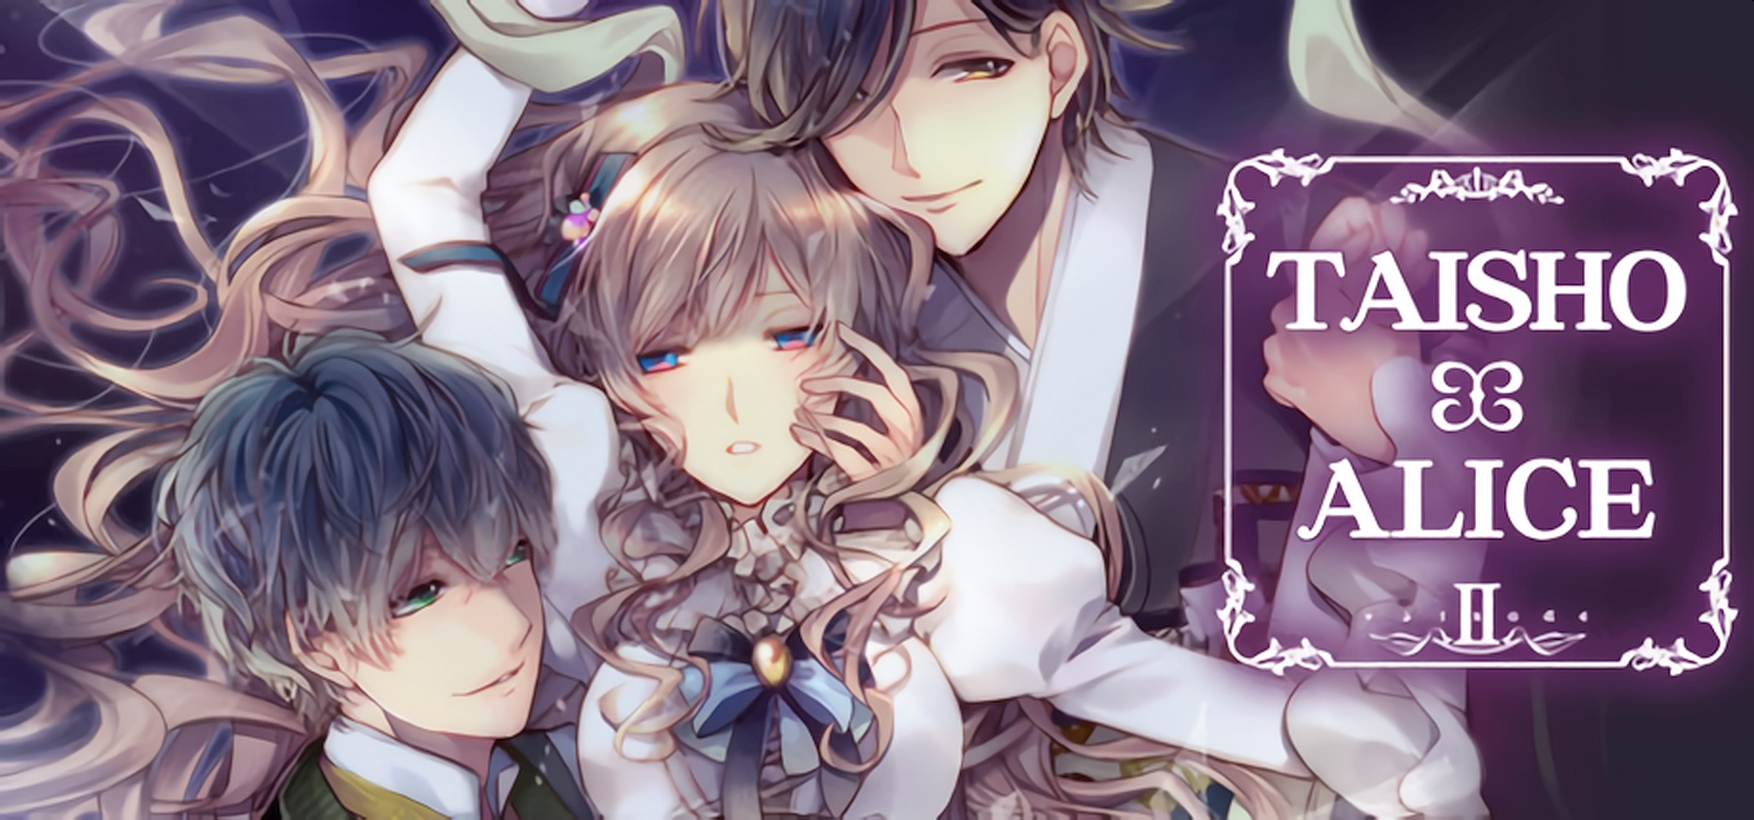 Taisho x Alice Episode 2 Featuring Kagura And Gretel Now Available On Steam